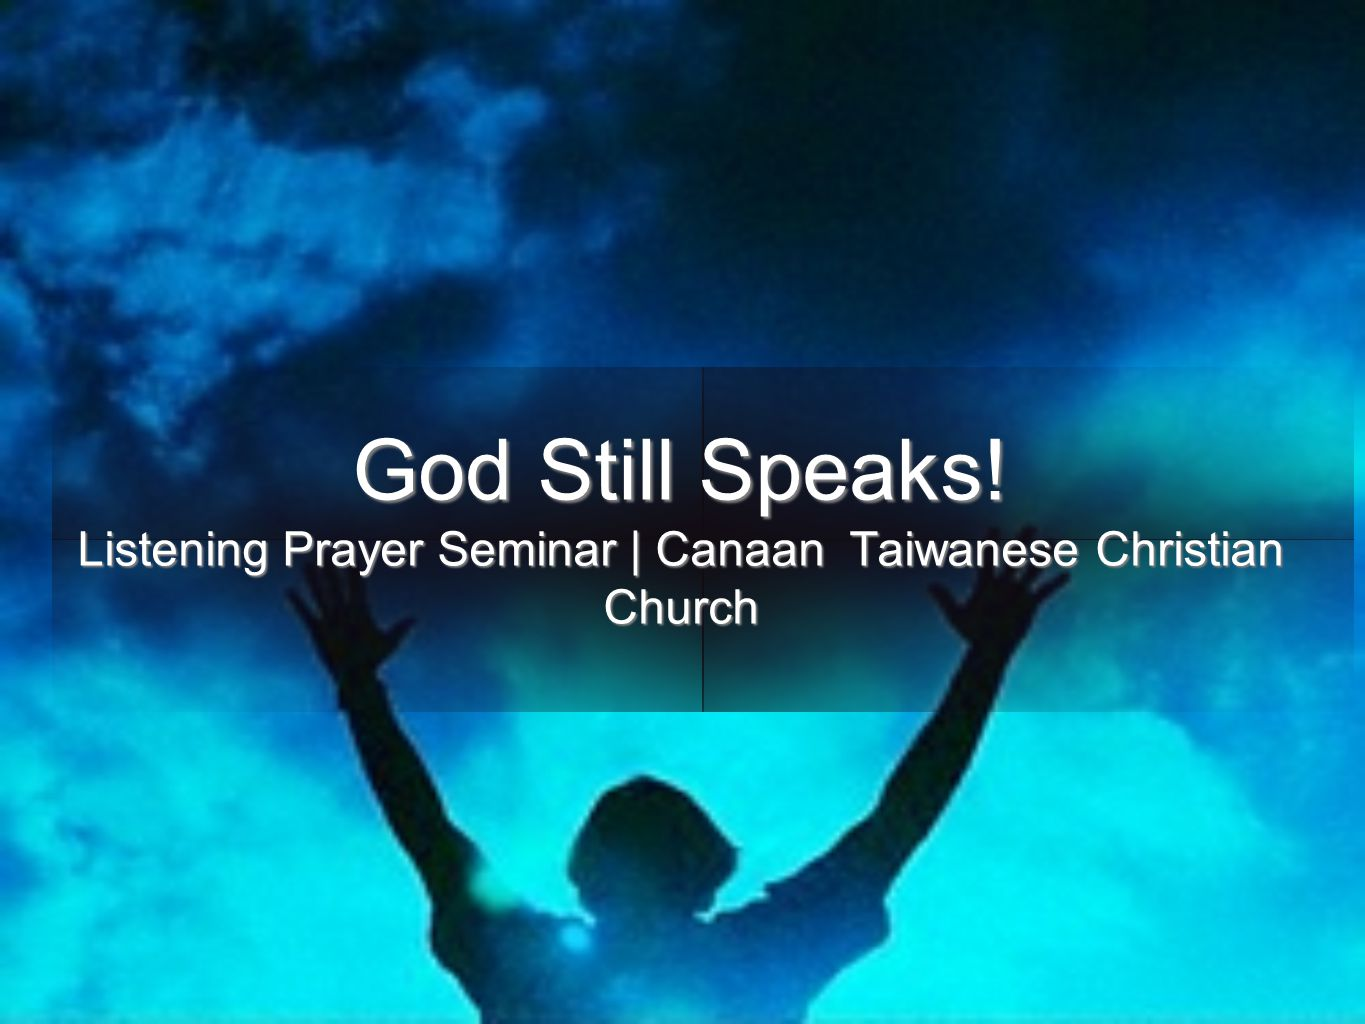 God Still Speaks! Listening Prayer Seminar | Canaan Taiwanese Christian Church